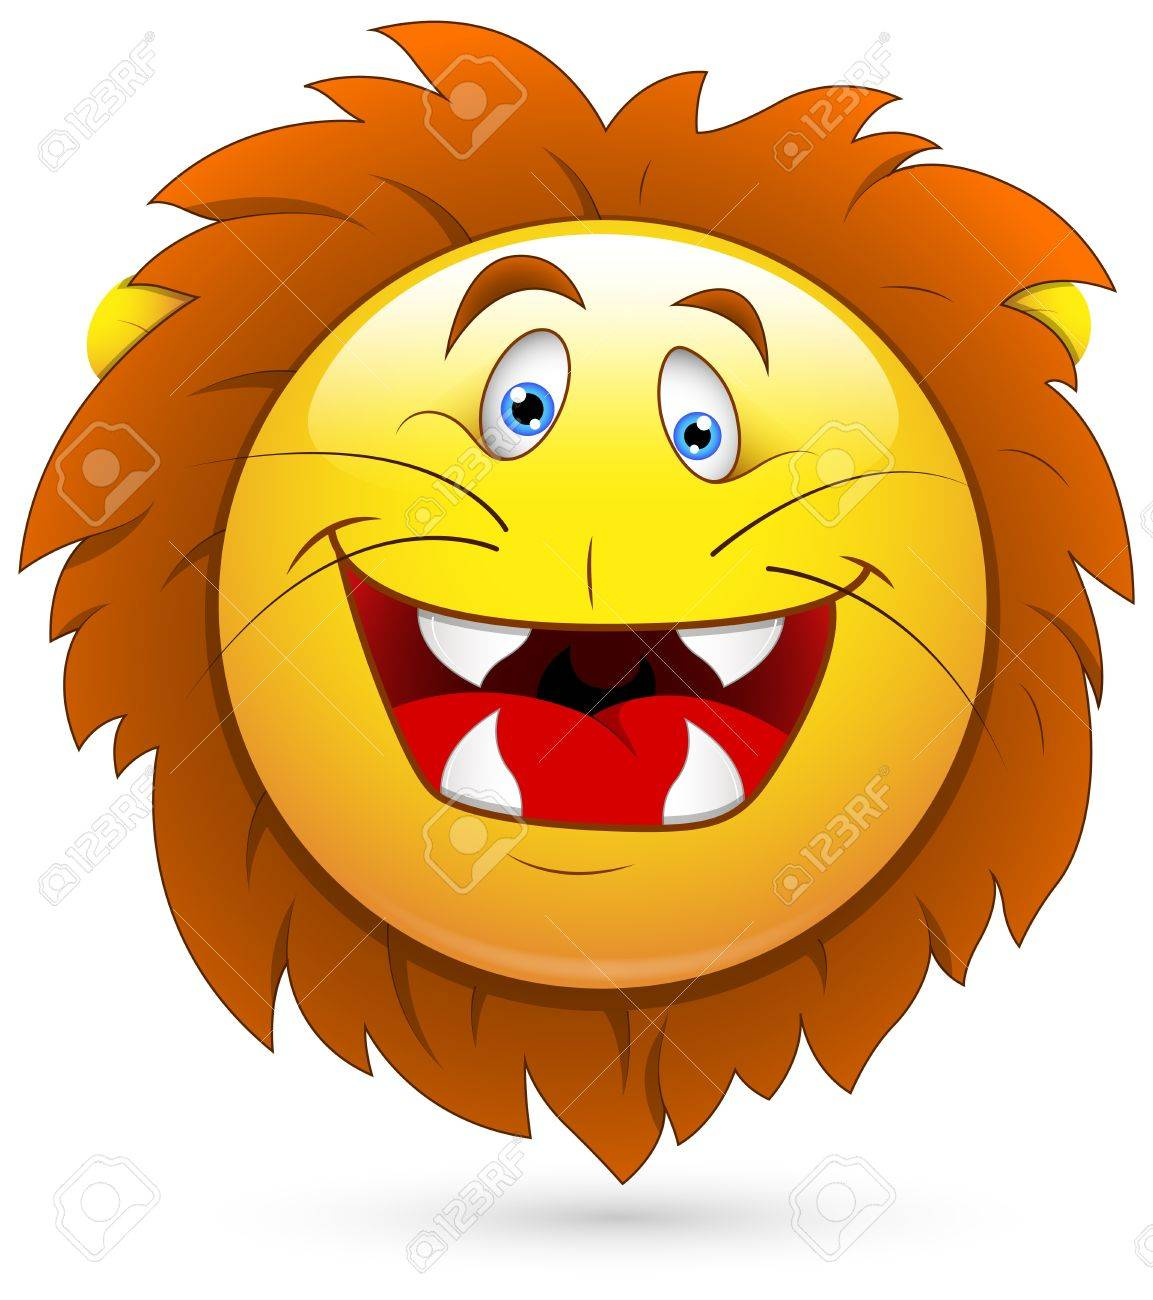 Smiley Vector Illustration - Lion Head Stock Vector - 18243345